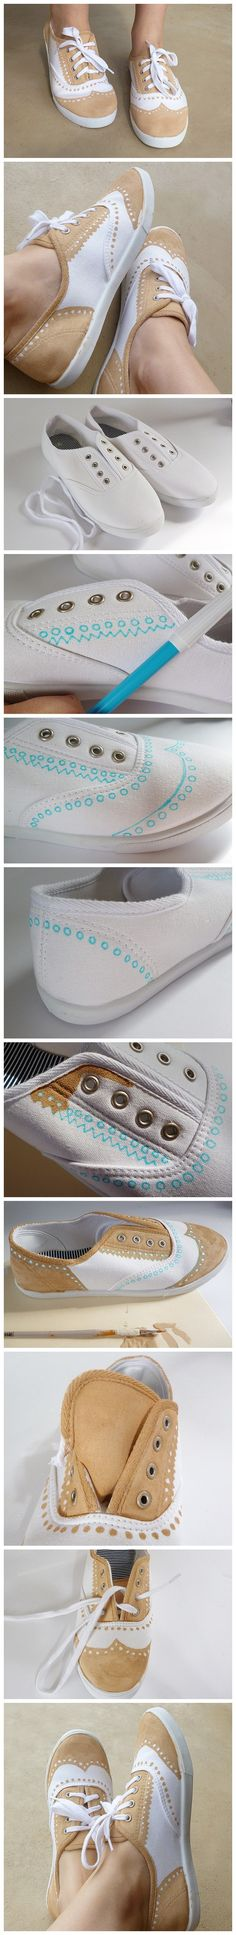 DIY tennis to oxford shoes.  I like my oxfords but these are so cute.